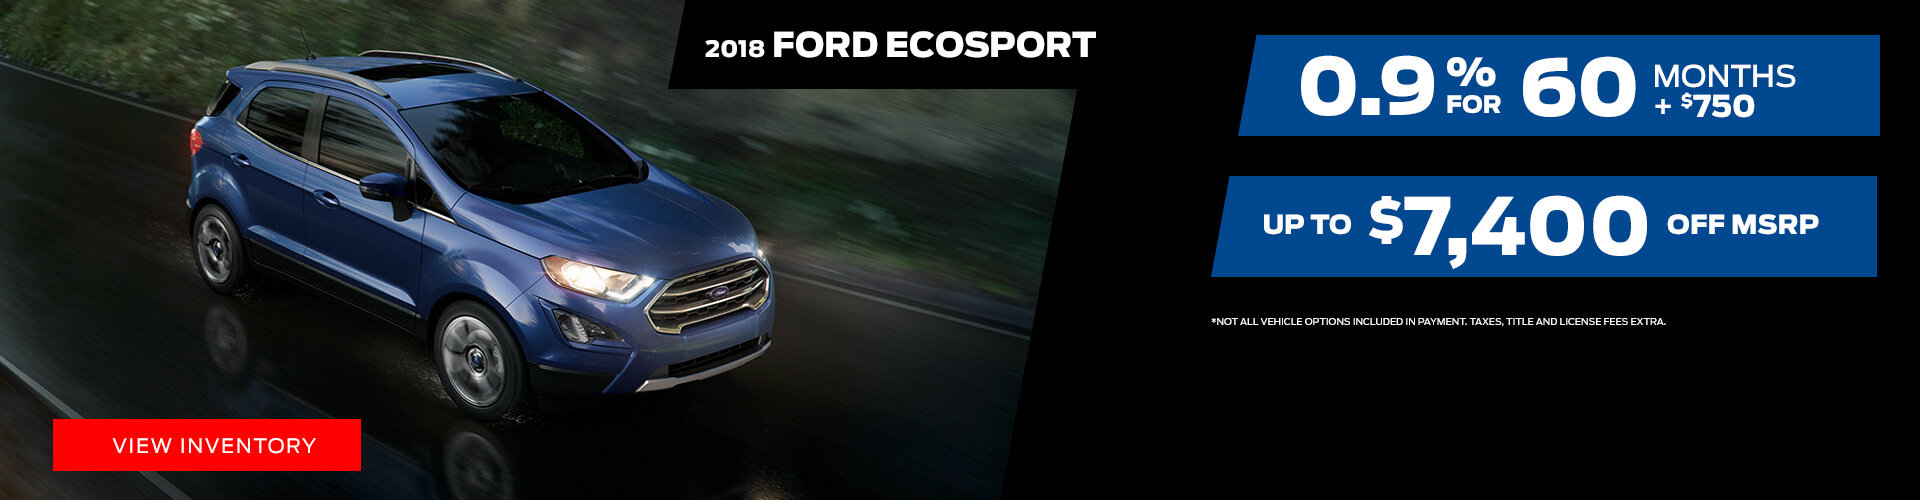 Special offer on 2018 Ford EcoSport 2018 Ford EcoSport Special Offer